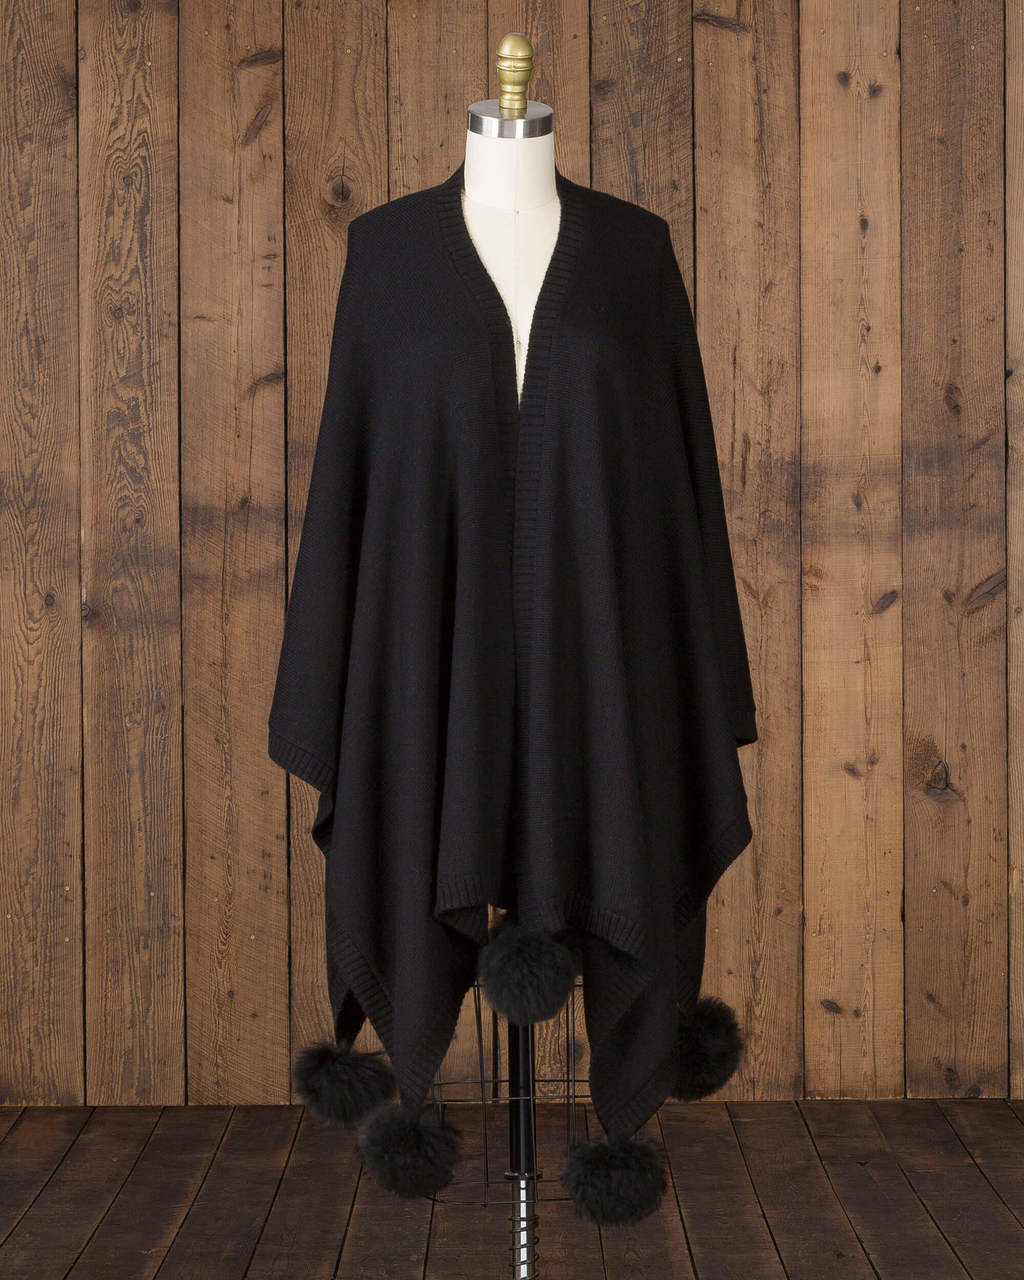 alicia adams alpaca alpina cape, alpaca cape with fur trim, alpaca poncho, alpaca poncho womens, alpaca vs cashmere, black baby alpaca cape